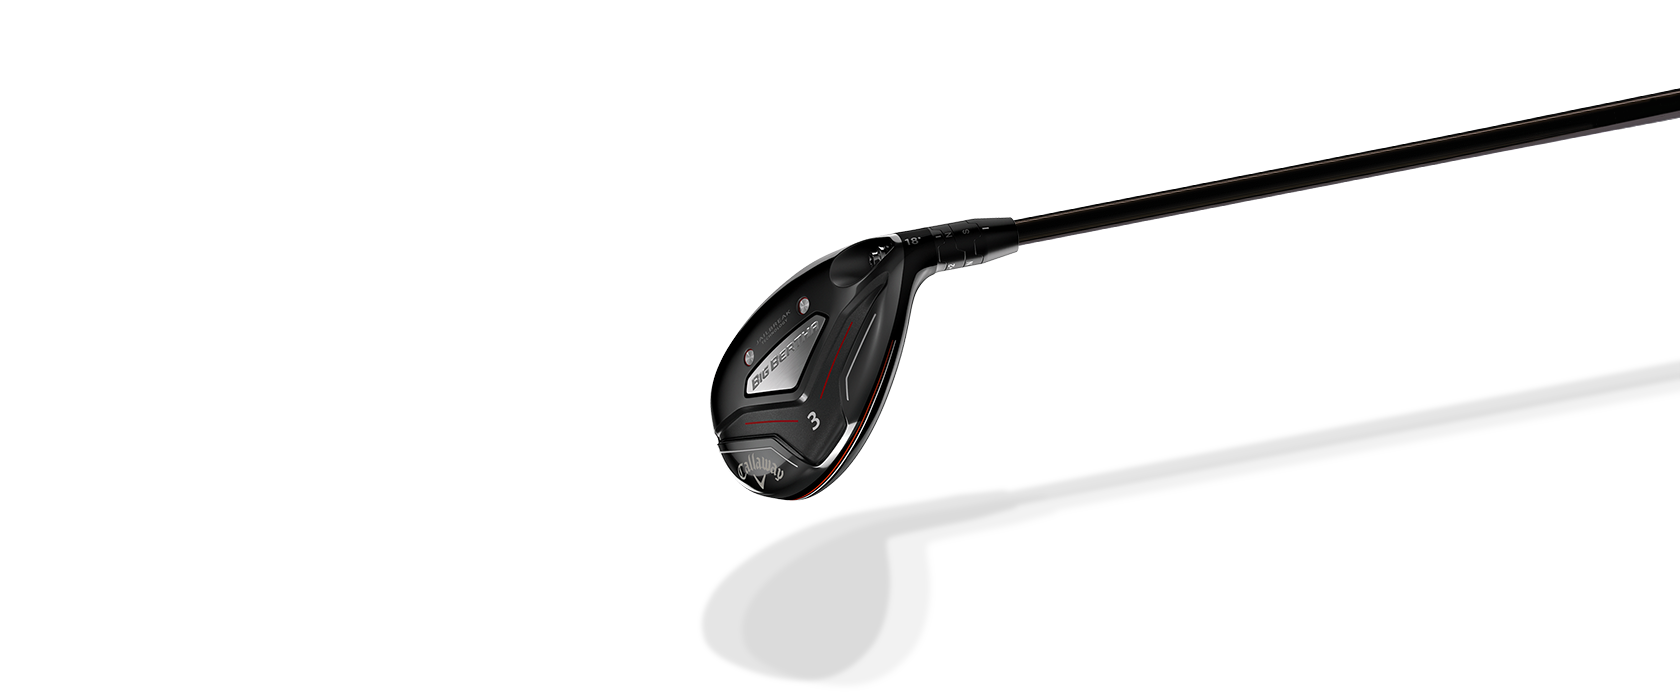 Women's Big Bertha Hybrid